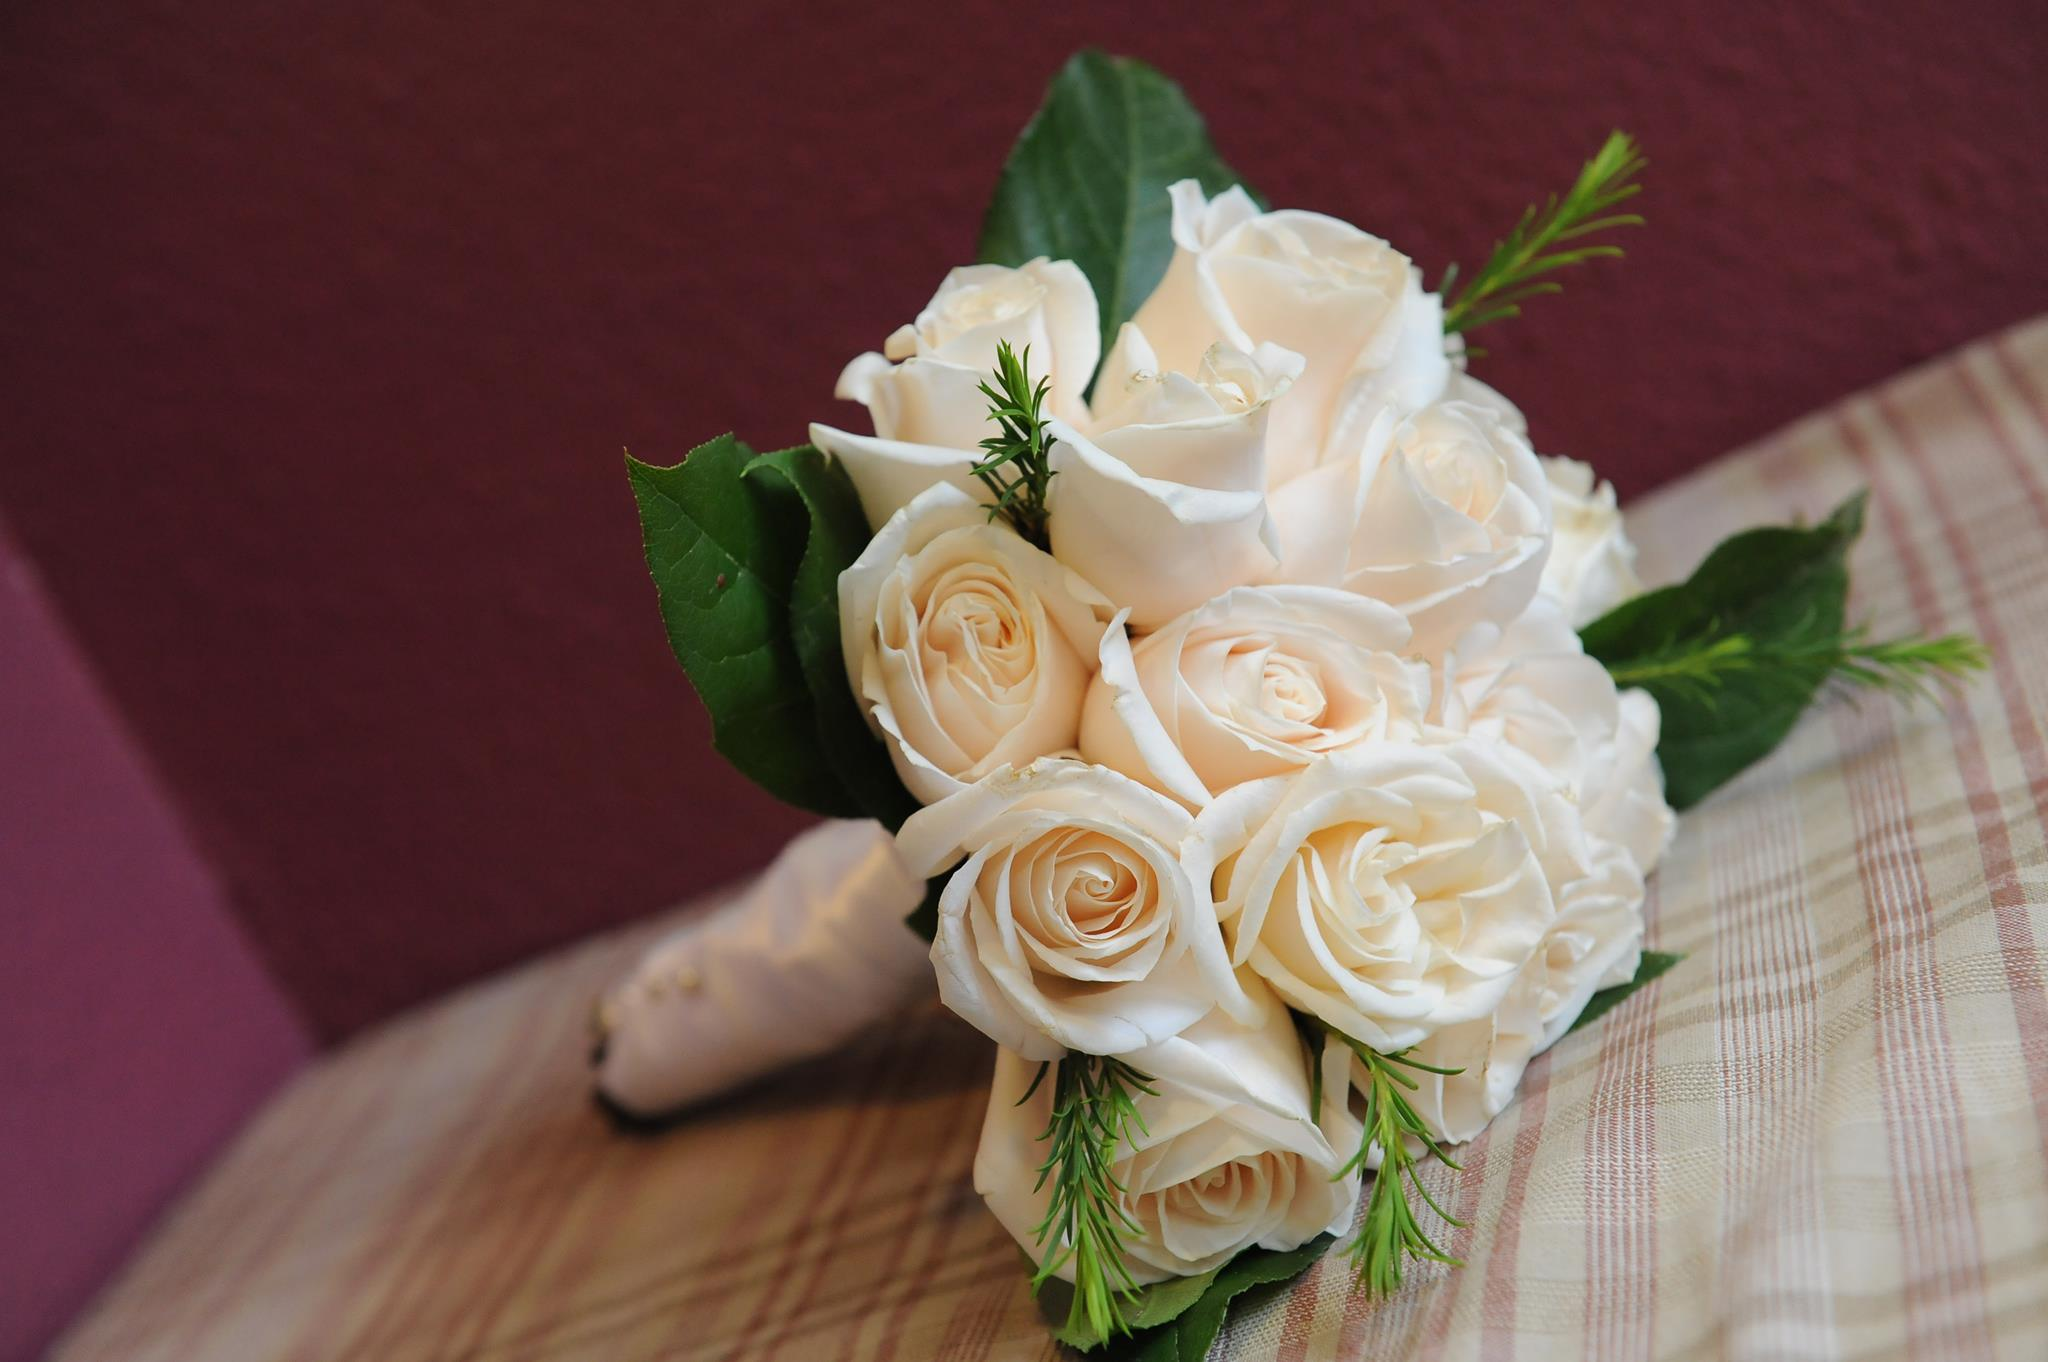 bloomin' blog – everything you want to know about flowers!